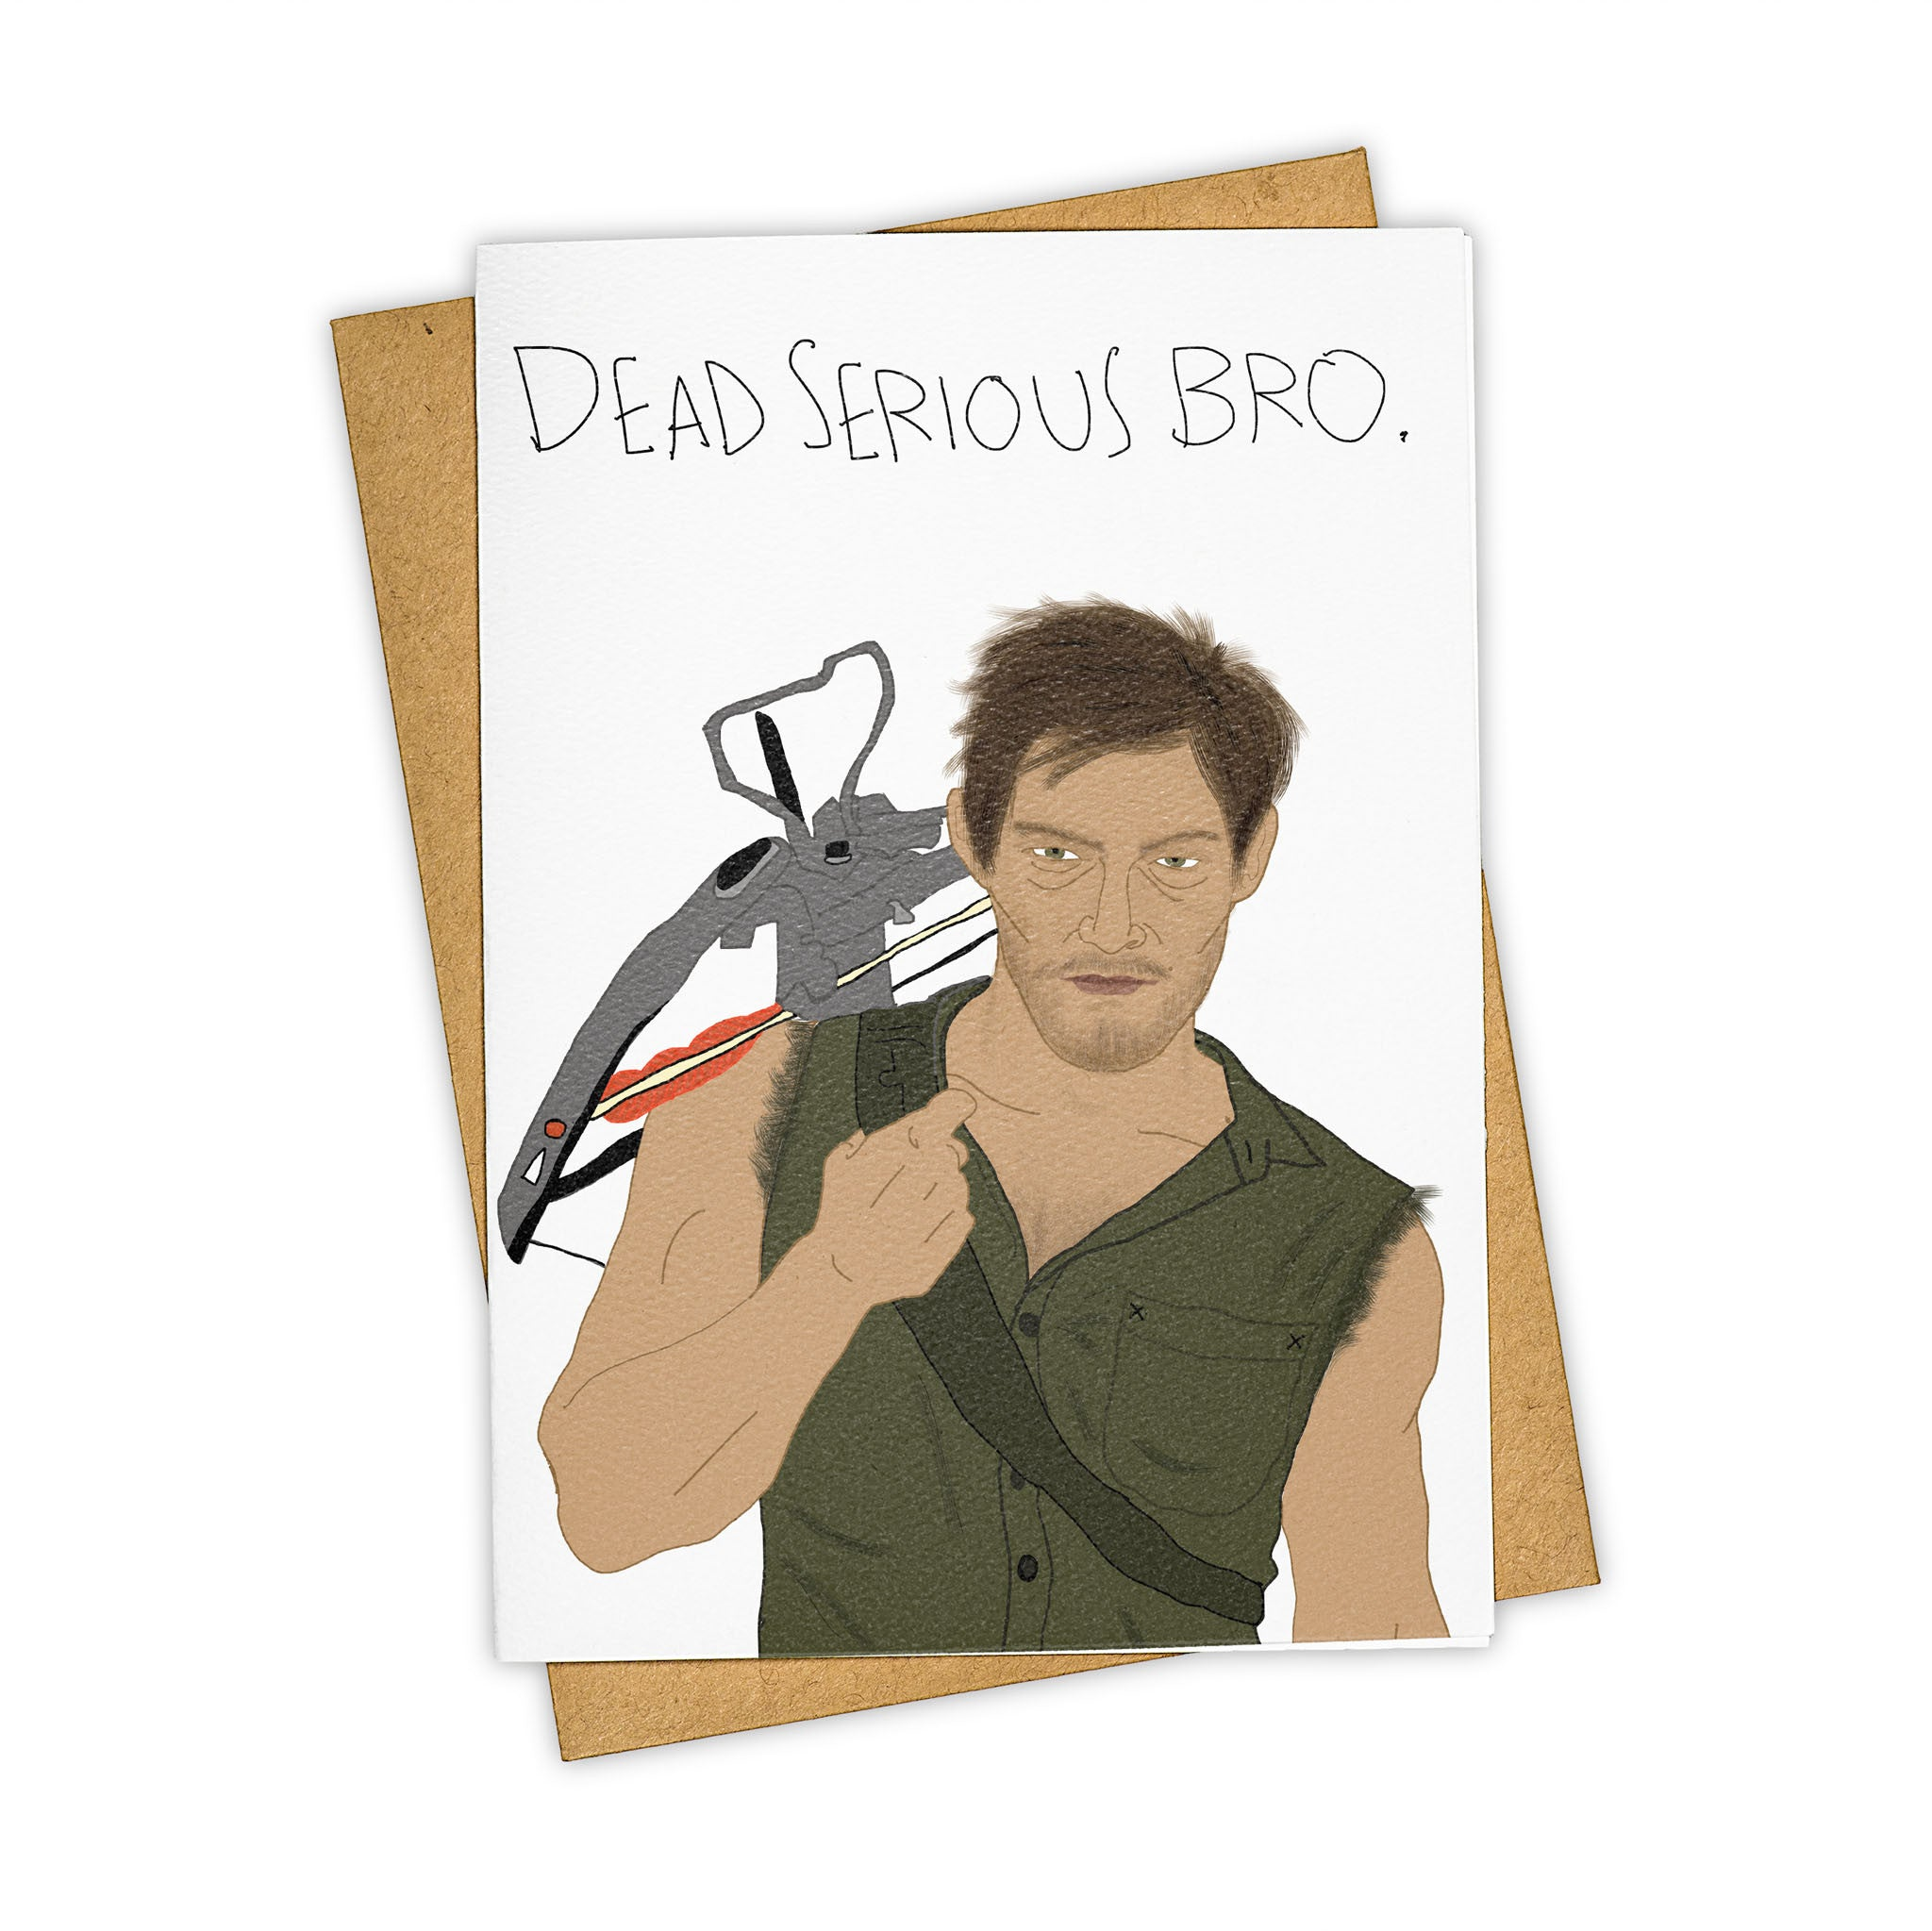 Tay ham greeting cards pop culture music and life page 23 tay ham walking dead daryl dixon greeting card m4hsunfo